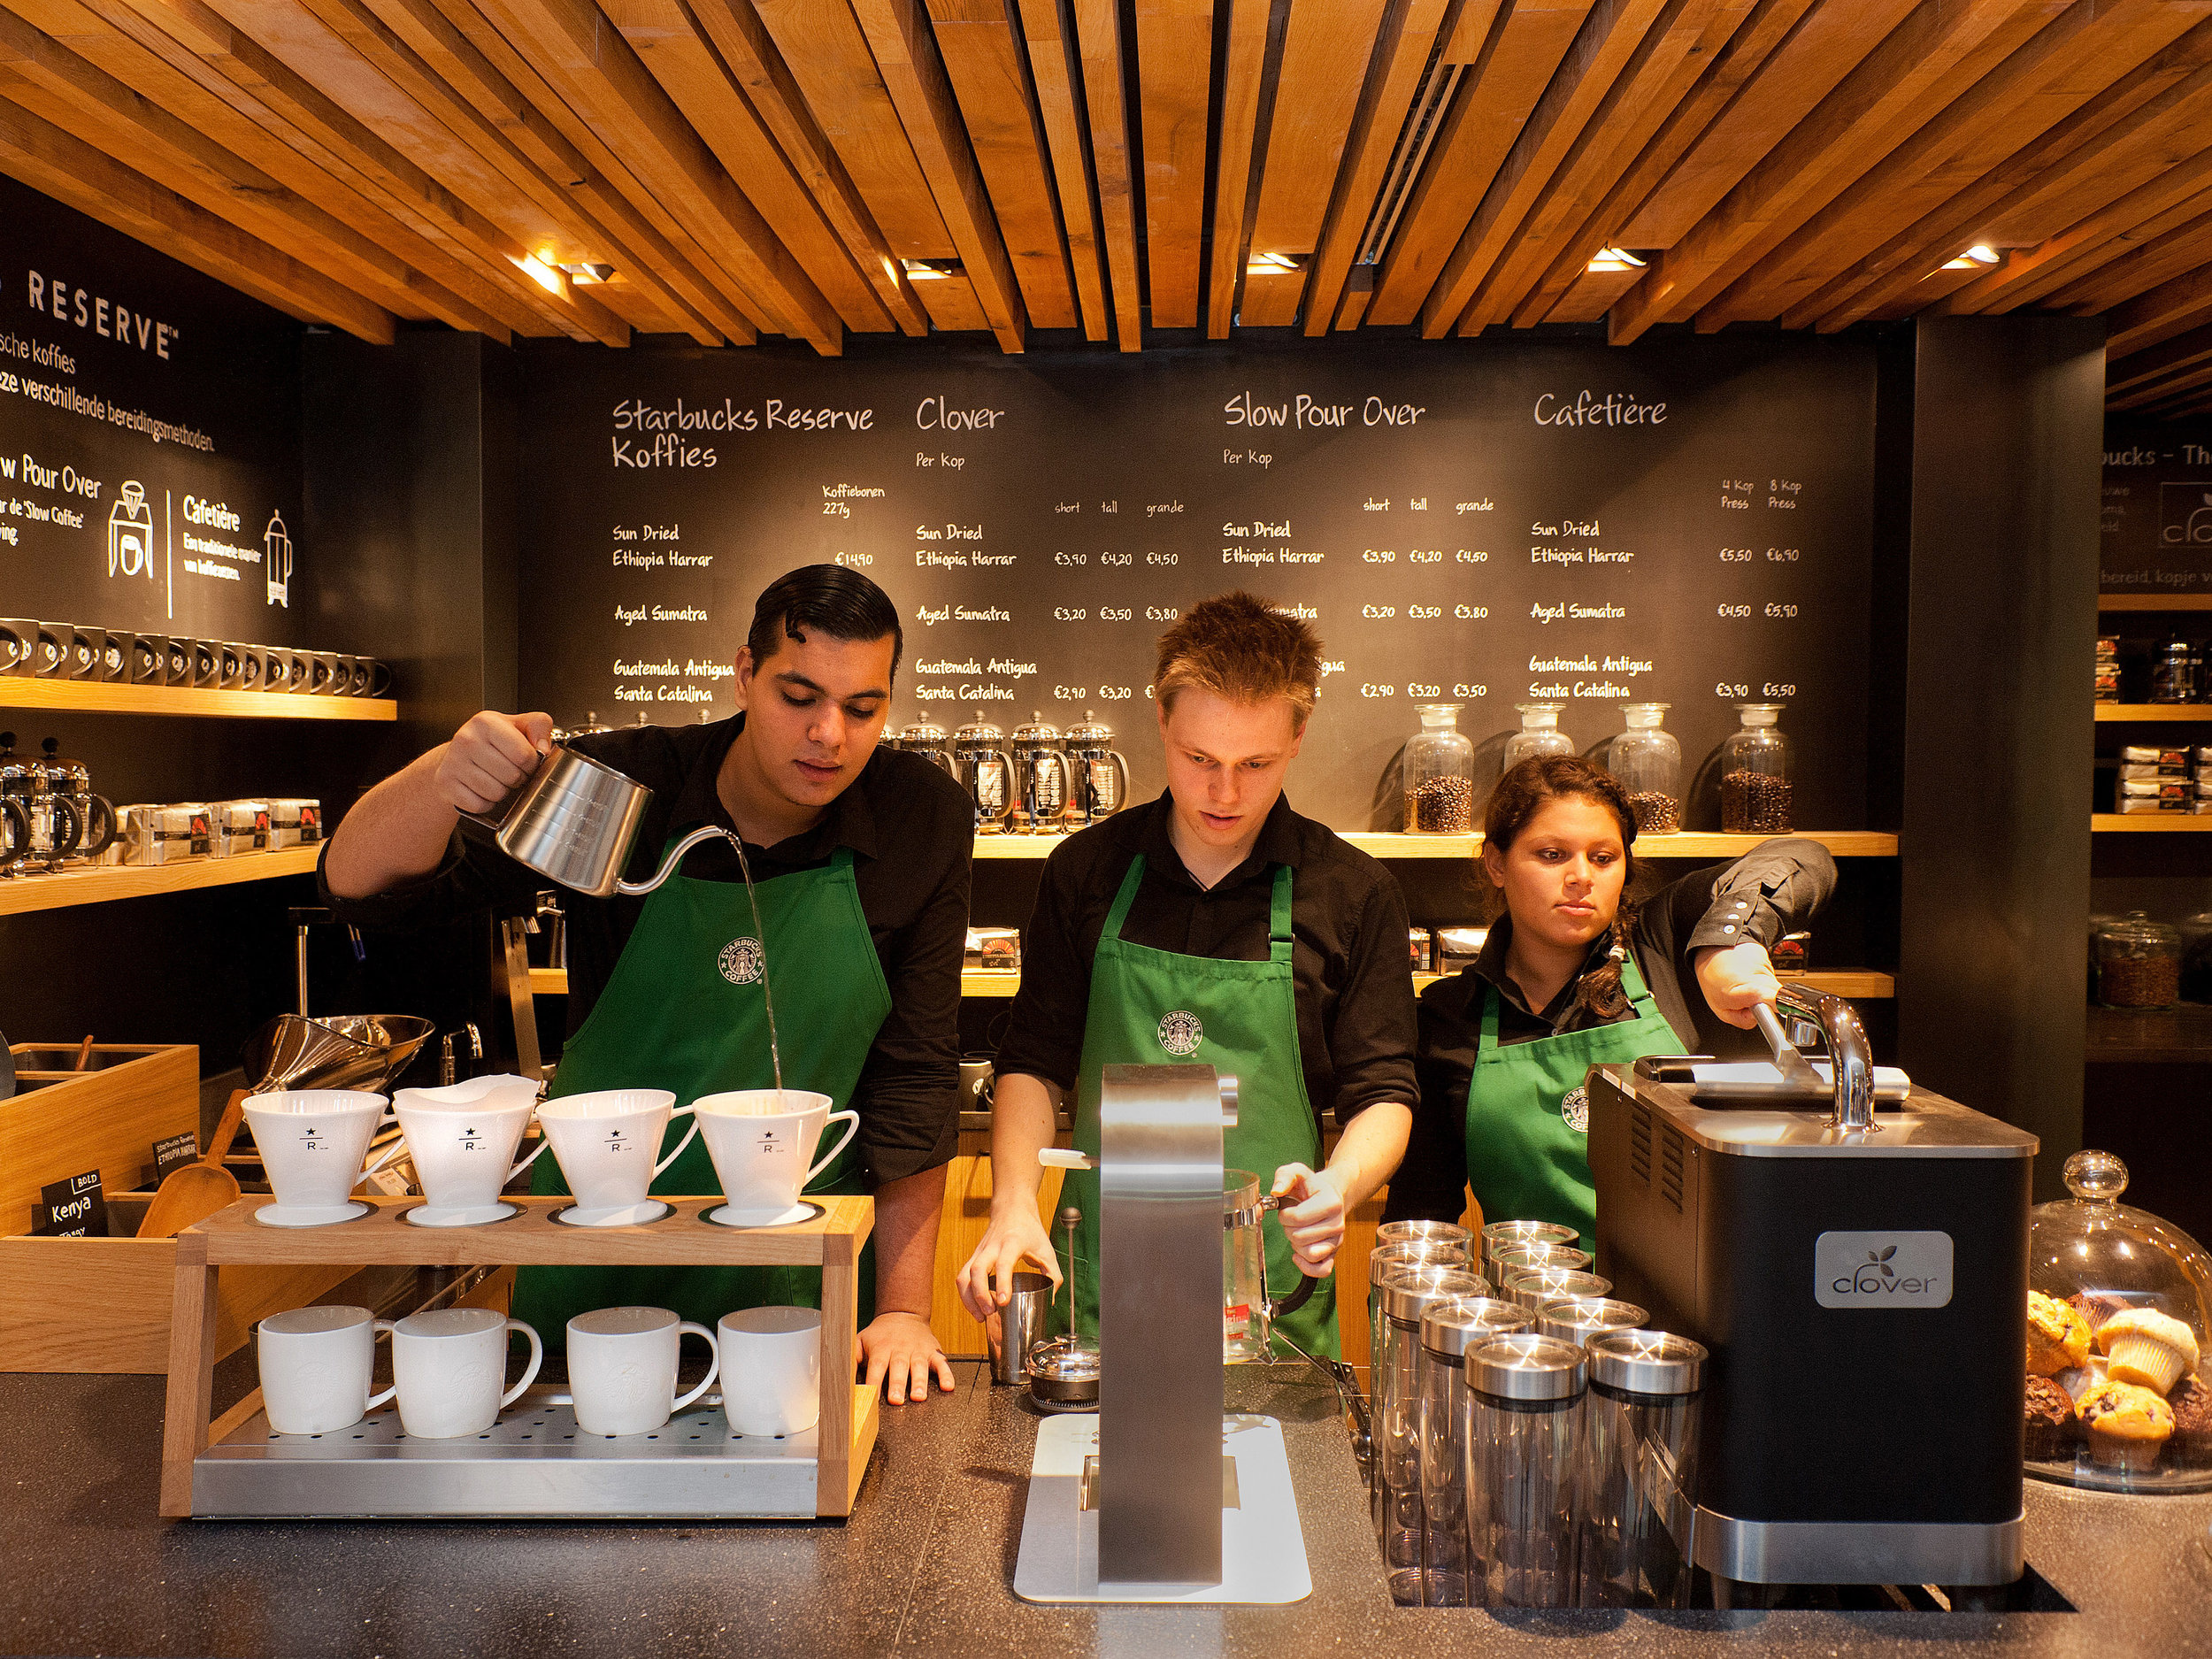 Starbucks' global dominance could not be predicted.